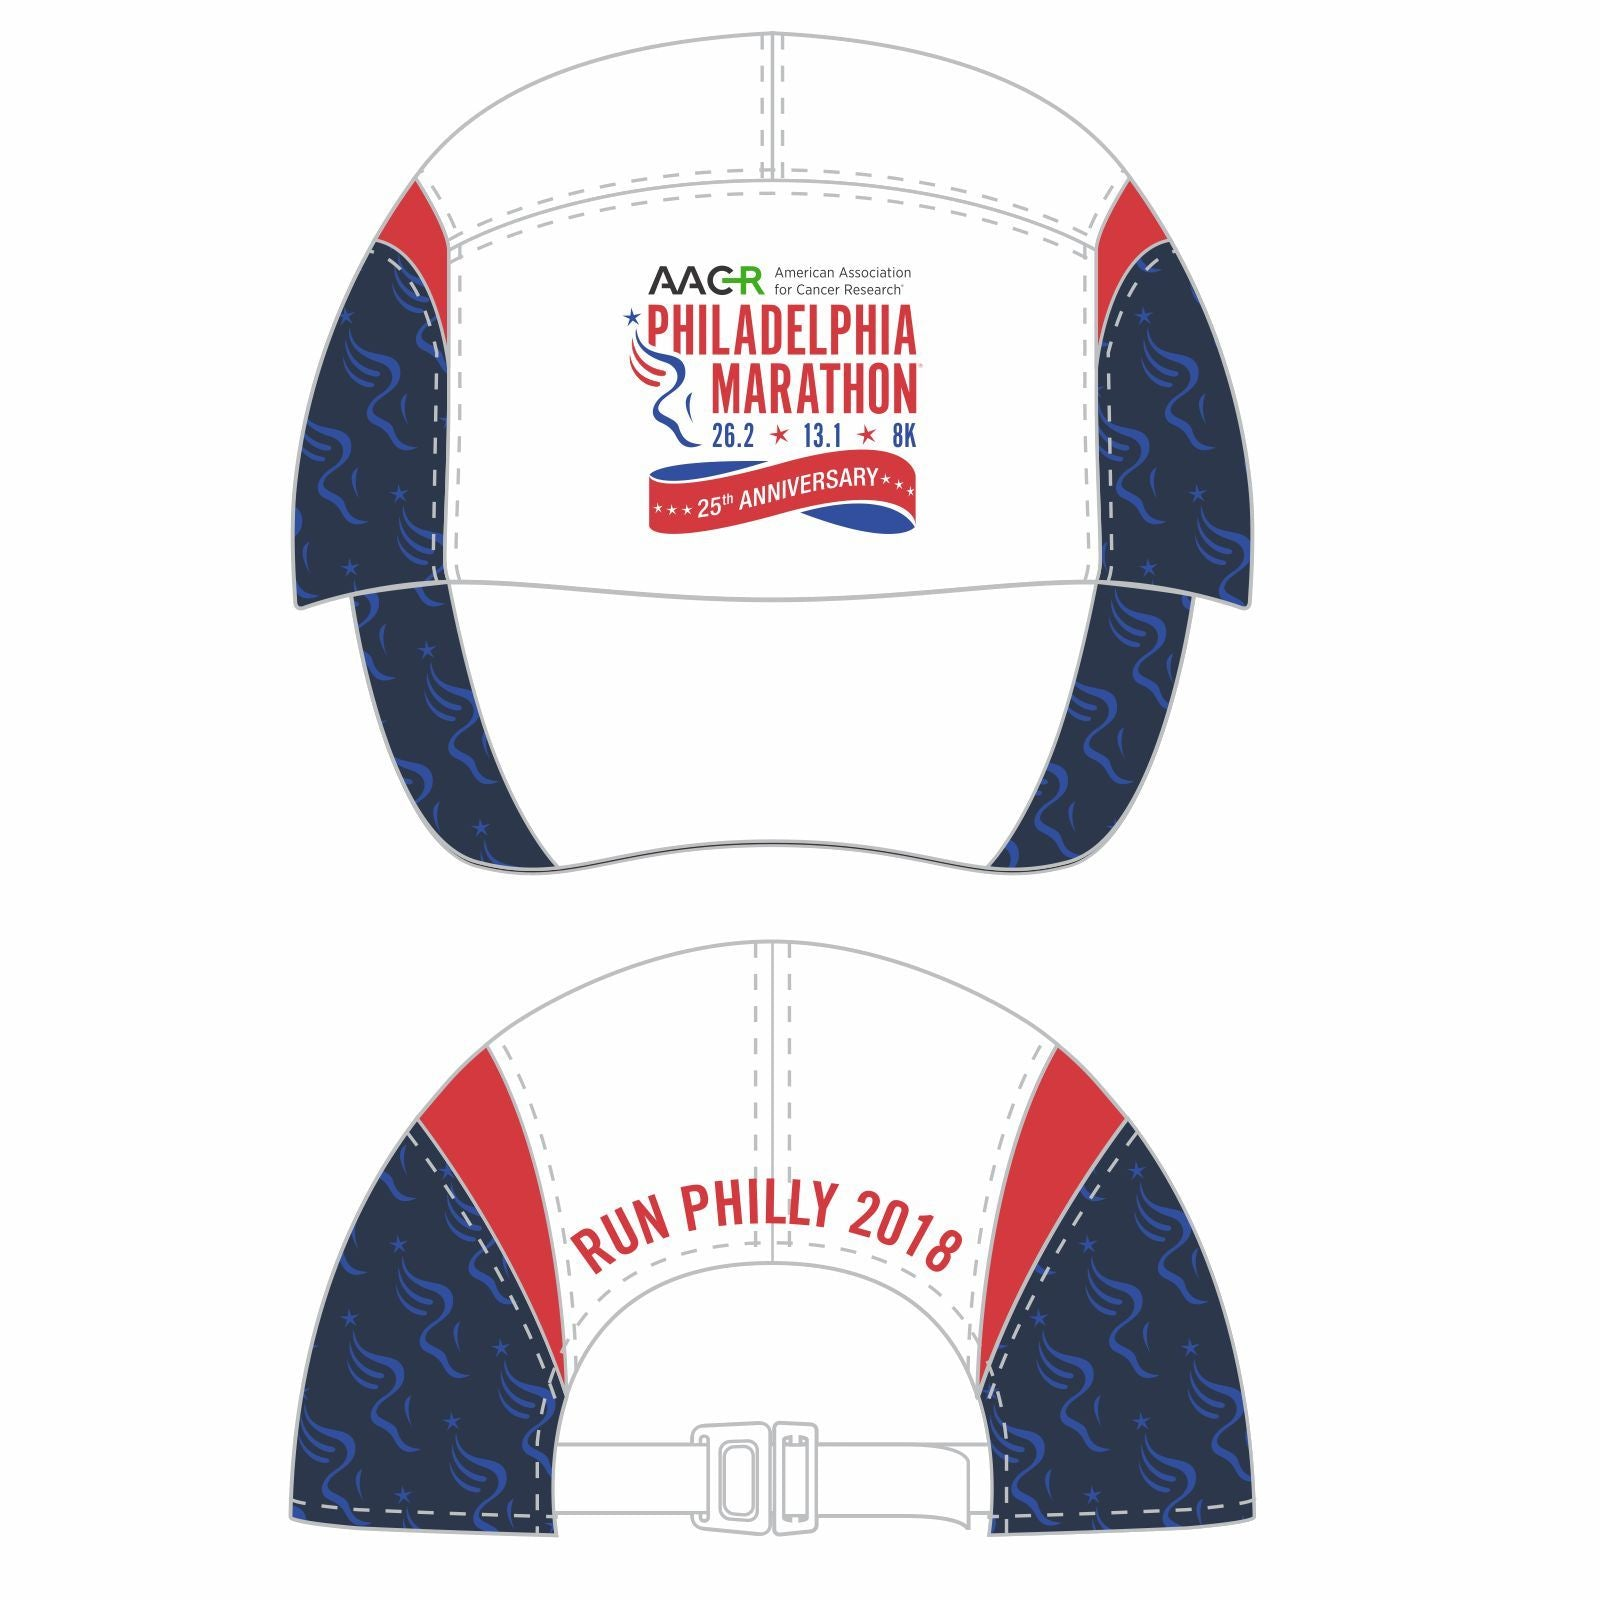 AACR Philadelphia Marathon '25th Anniversary' Tri Tech Cap - White w/ Navy Sides, Red Gussets